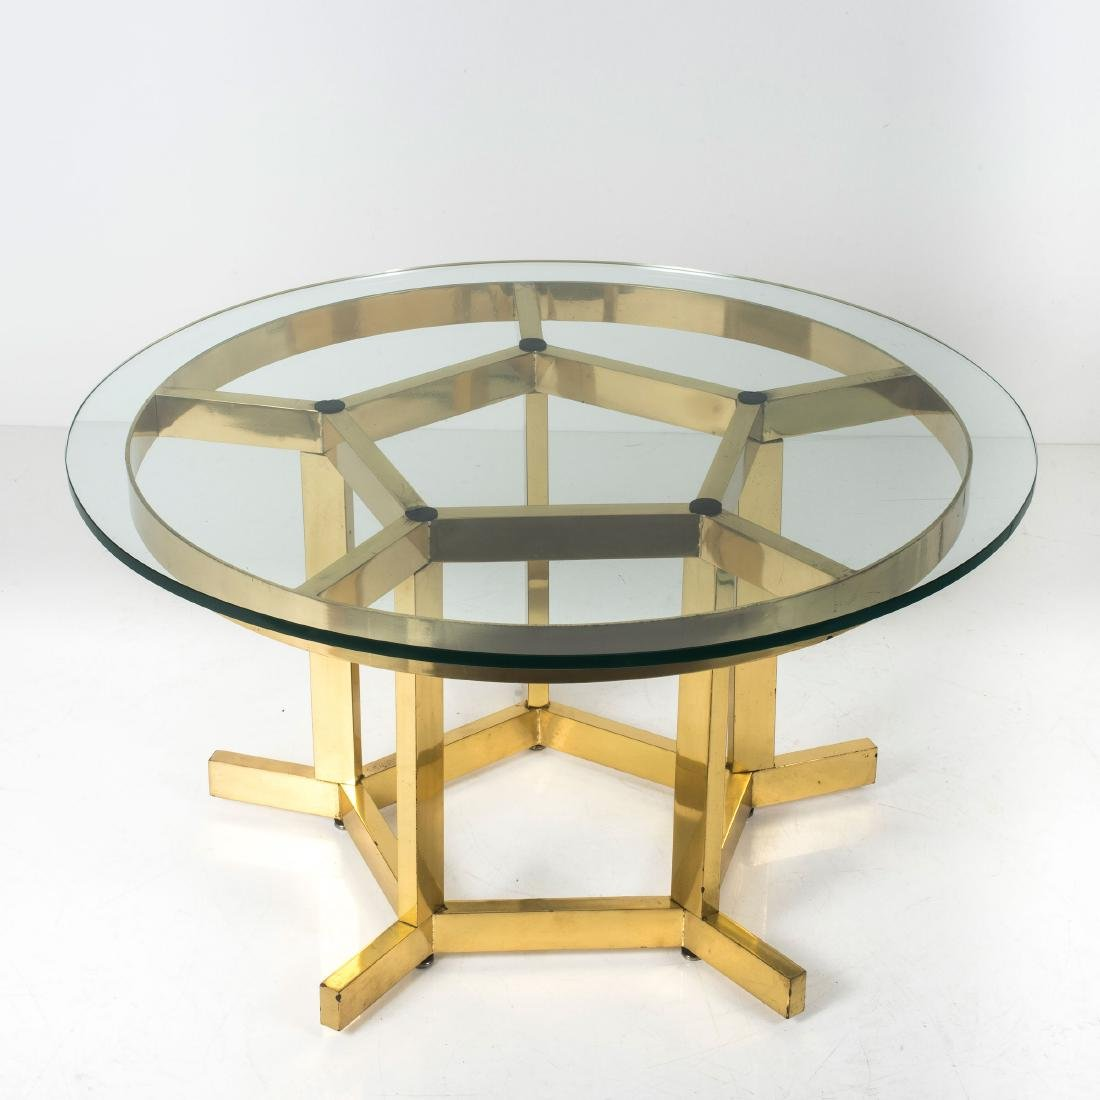 Coffee table, c. 1970 - 2